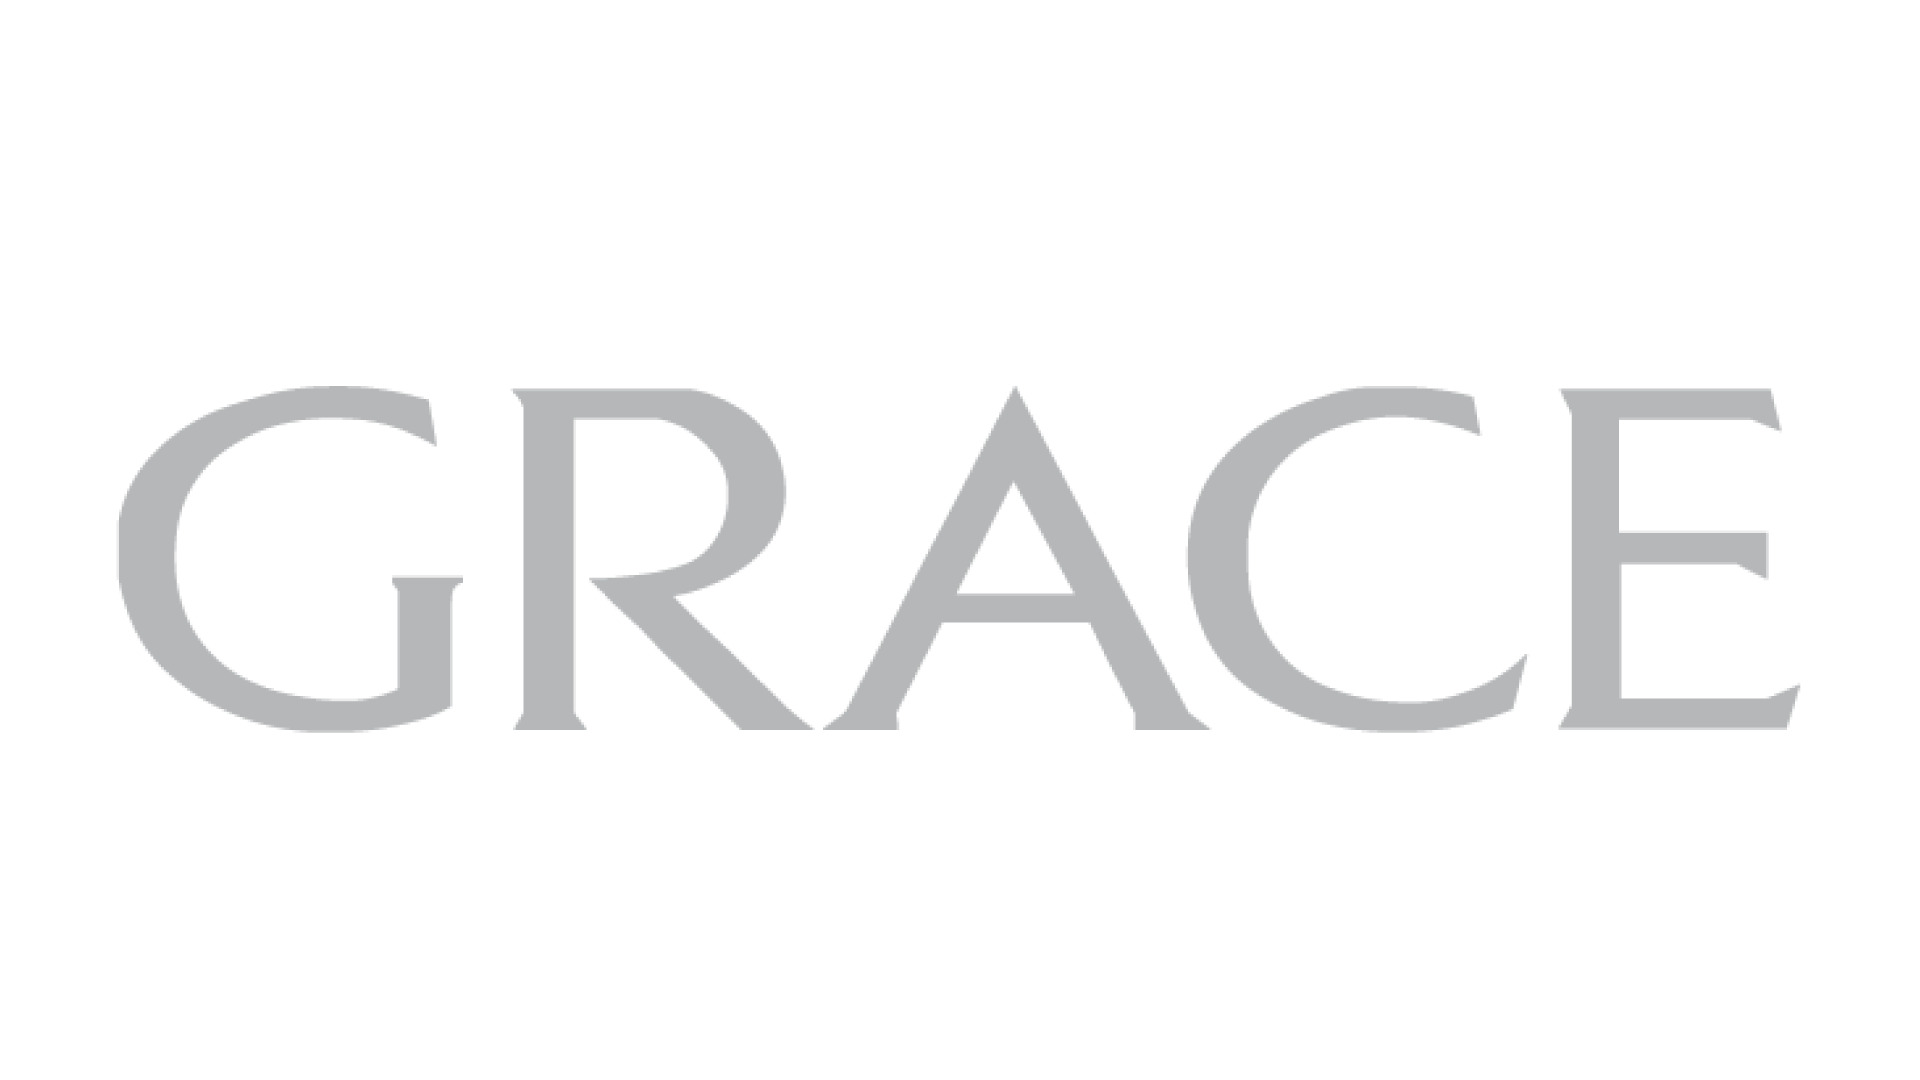 Grace Group of companies logo. Grace group is one of the many organisations People Builders has as client.